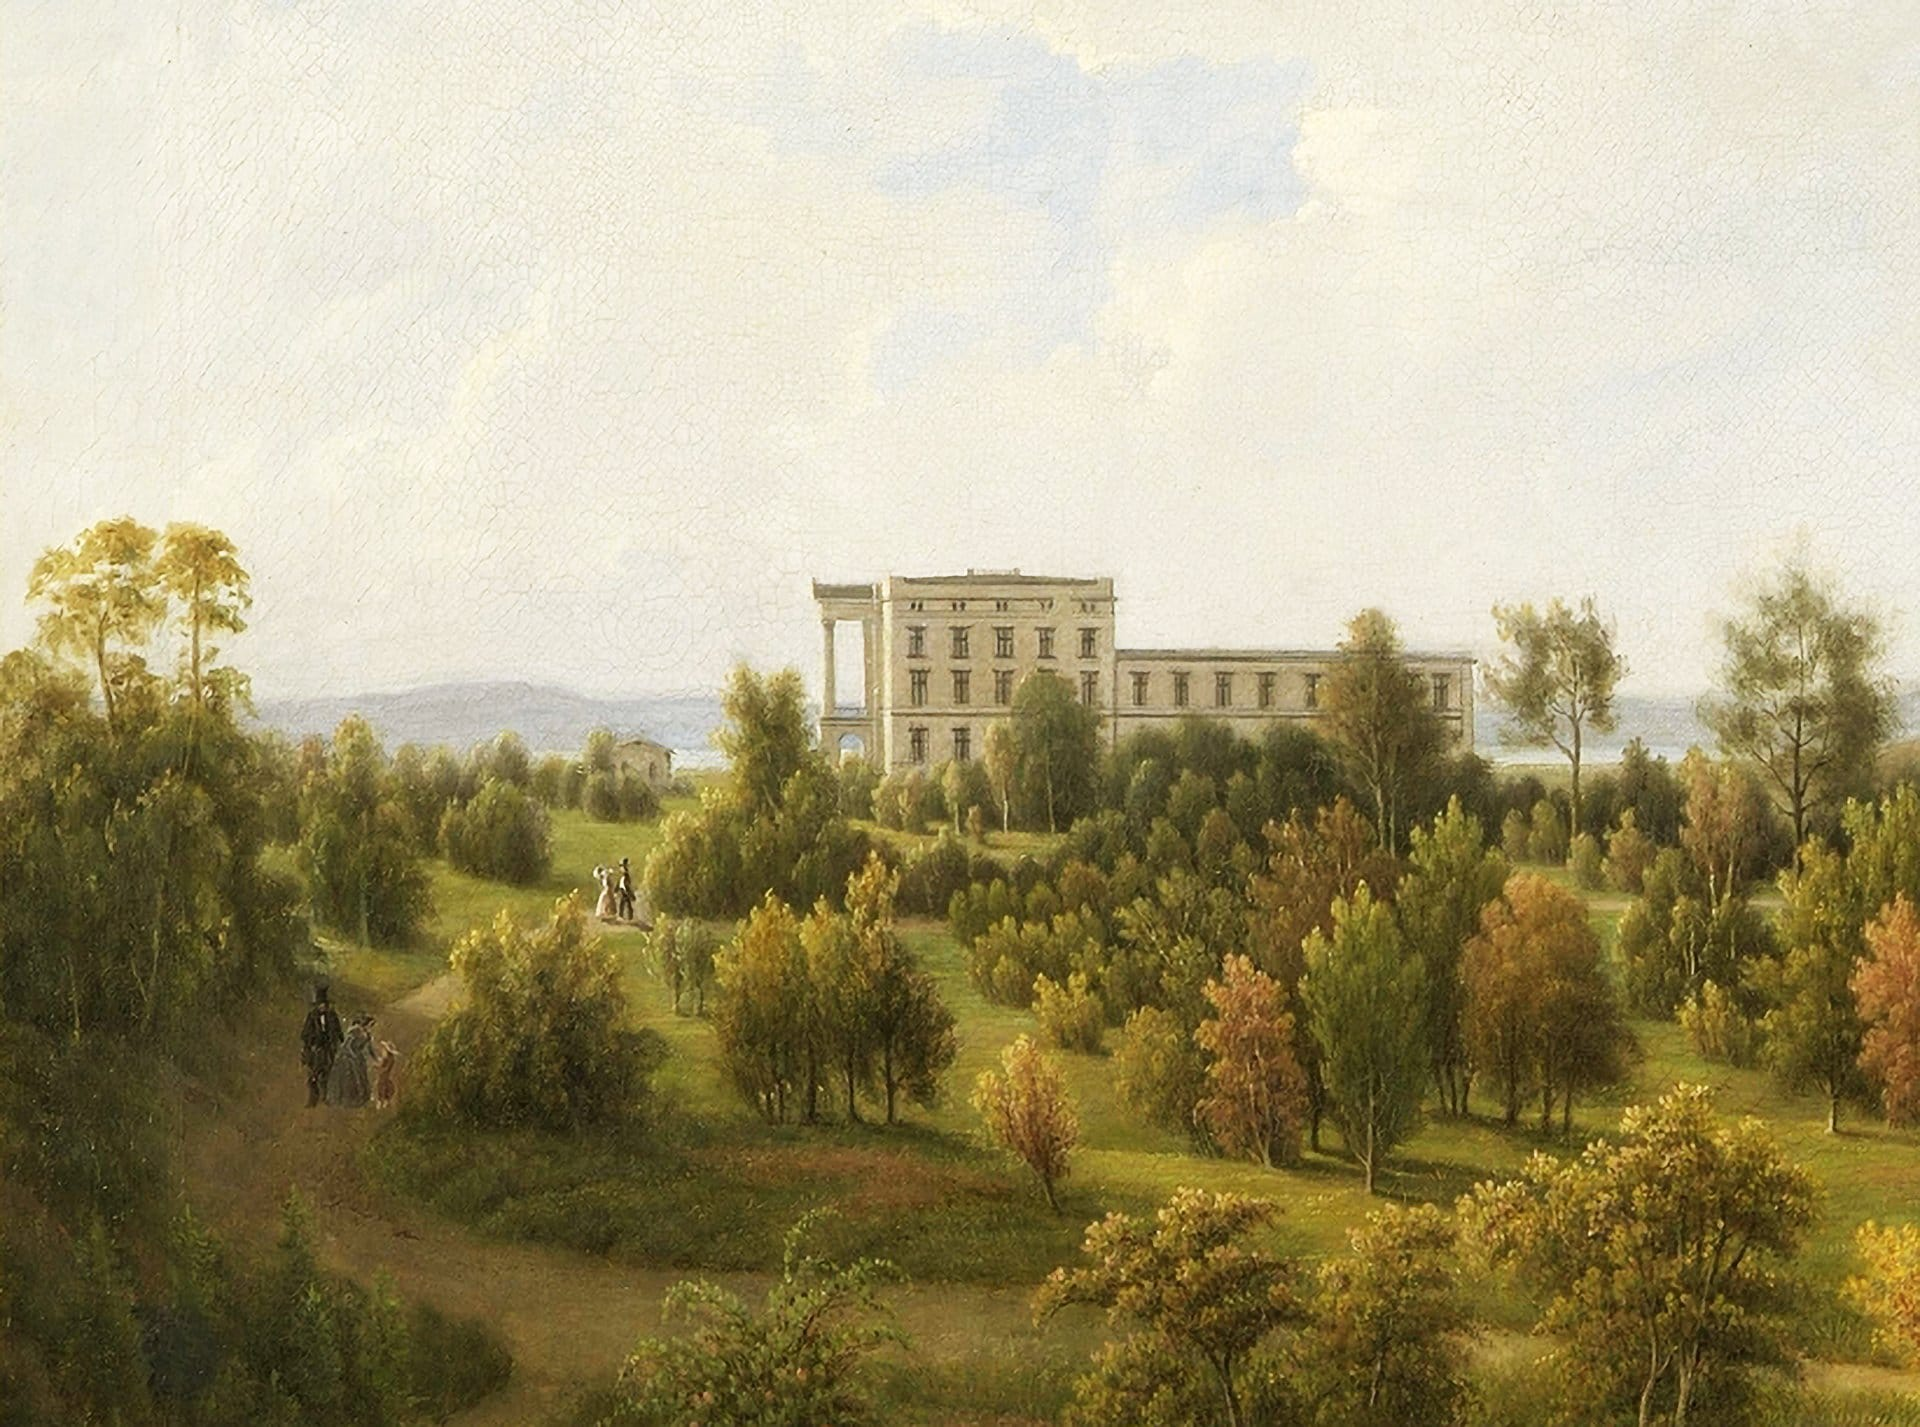 The royal palace in Oslo and its north-eastern facade. In the background, we see the Oslofjord. The painting is by the architect himself, Hans von Linstow. | Photo: Rune Aakvik - Oslo Museum cc by.